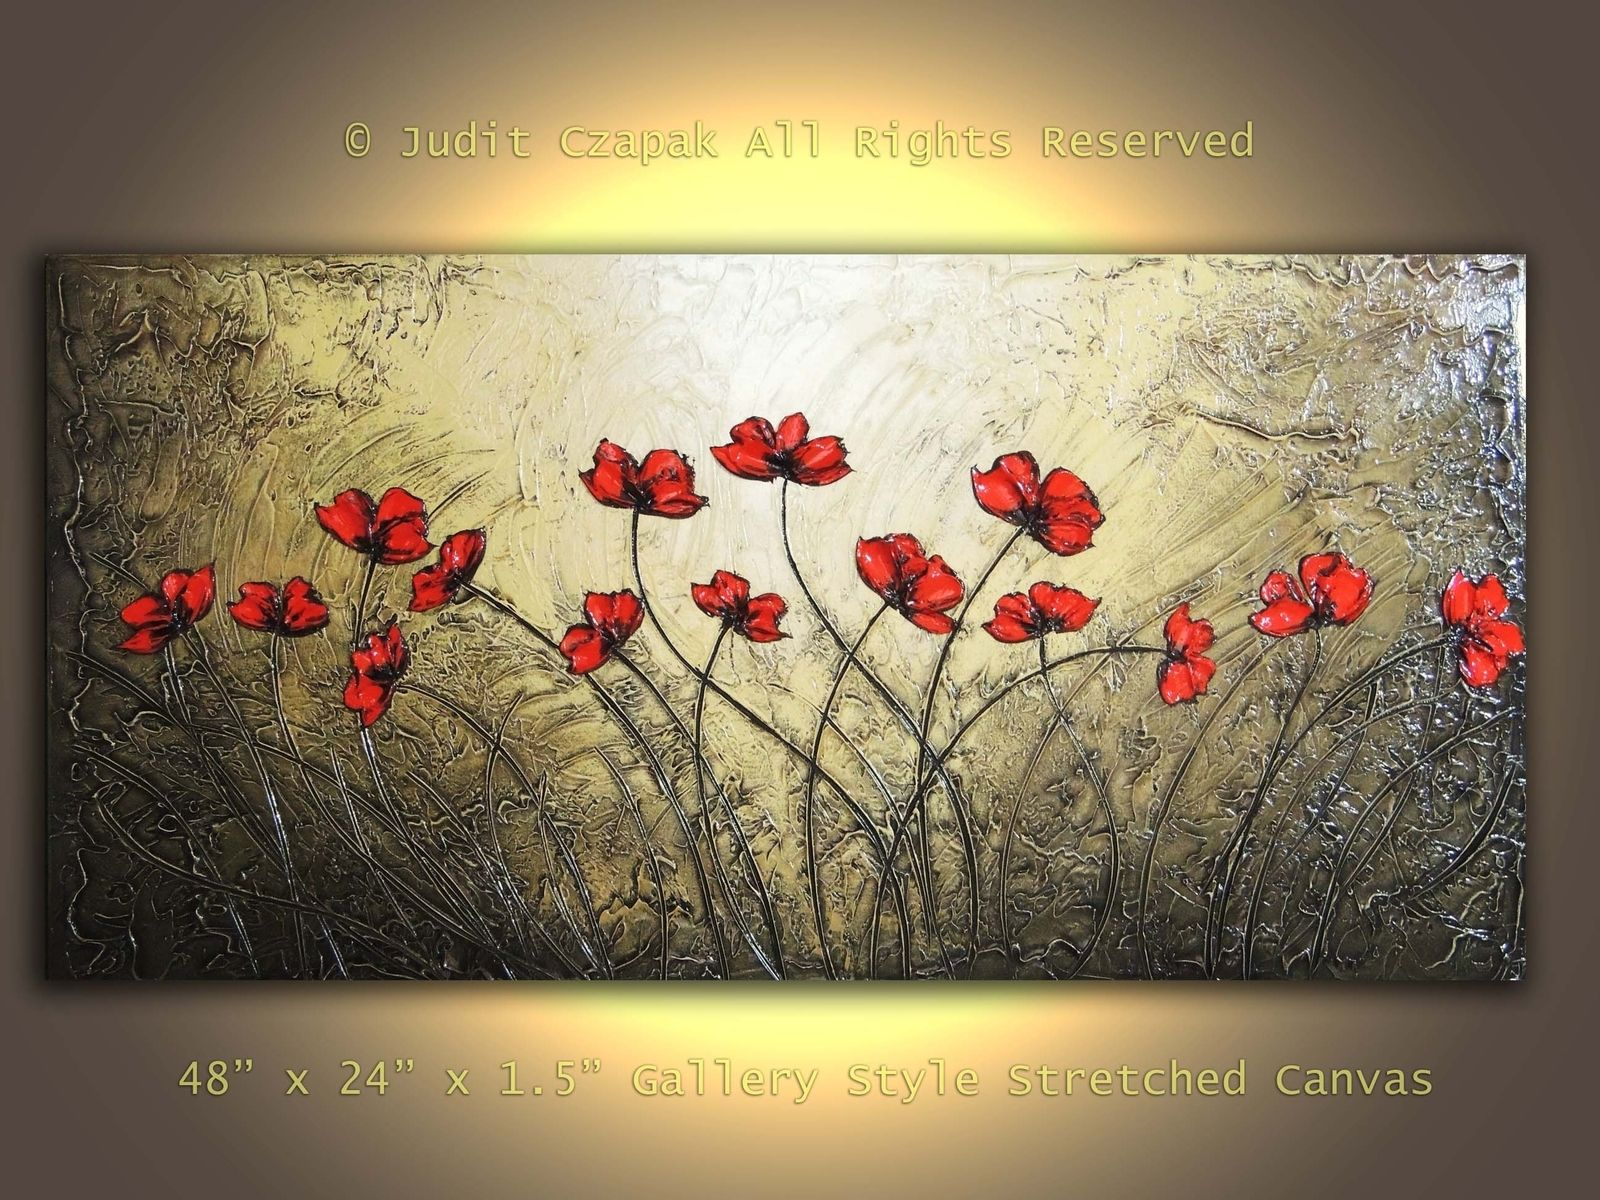 Hand Made Original Modern Textured Painting On Canvas by Judit